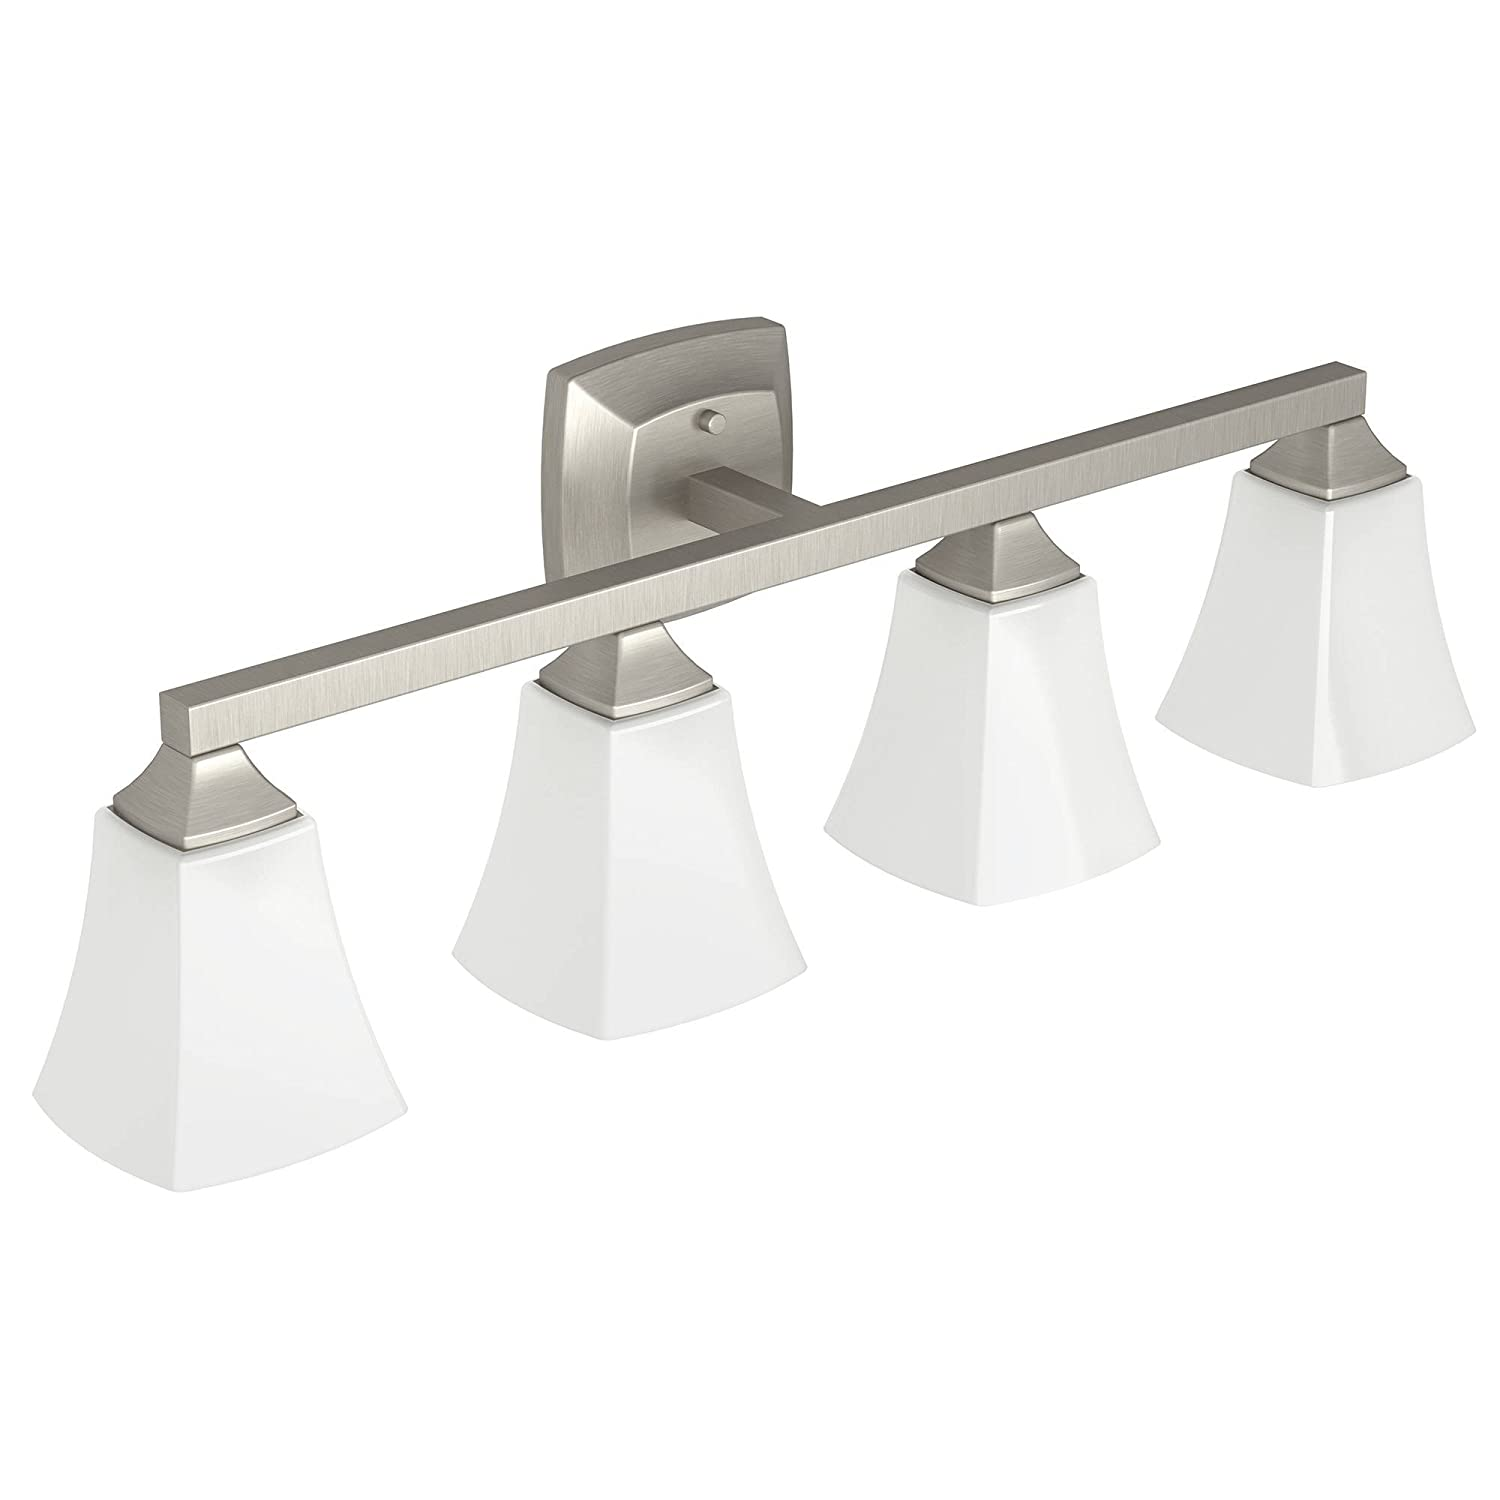 Moen yb5164bn voss bath lighting four globe brushed nickel moen yb5164bn voss bath lighting four globe brushed nickel amazon mozeypictures